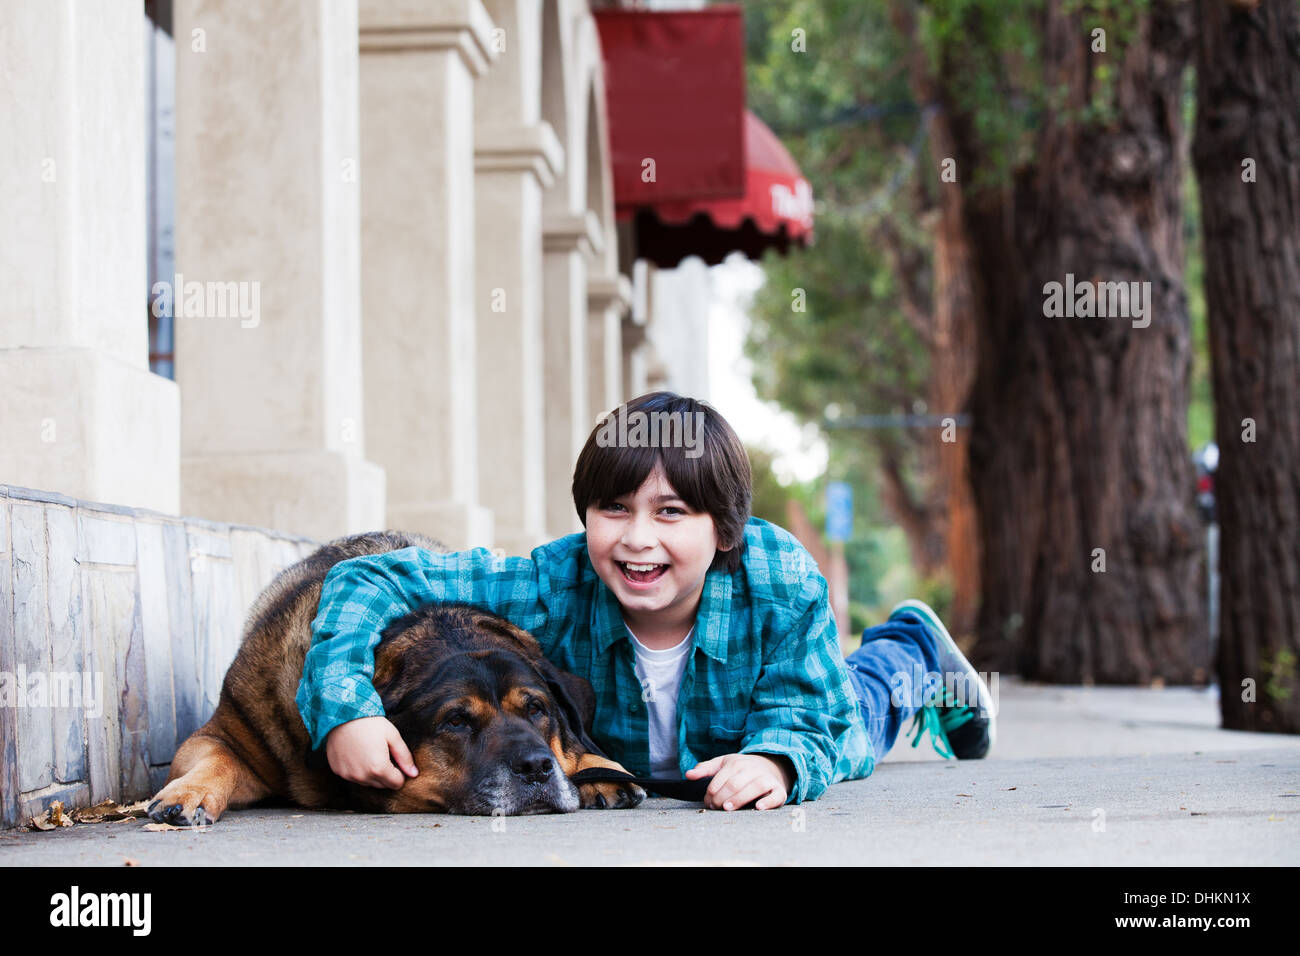 A  cute 10 year old boy and his dog lying down on the sidewalk laughing - Stock Image